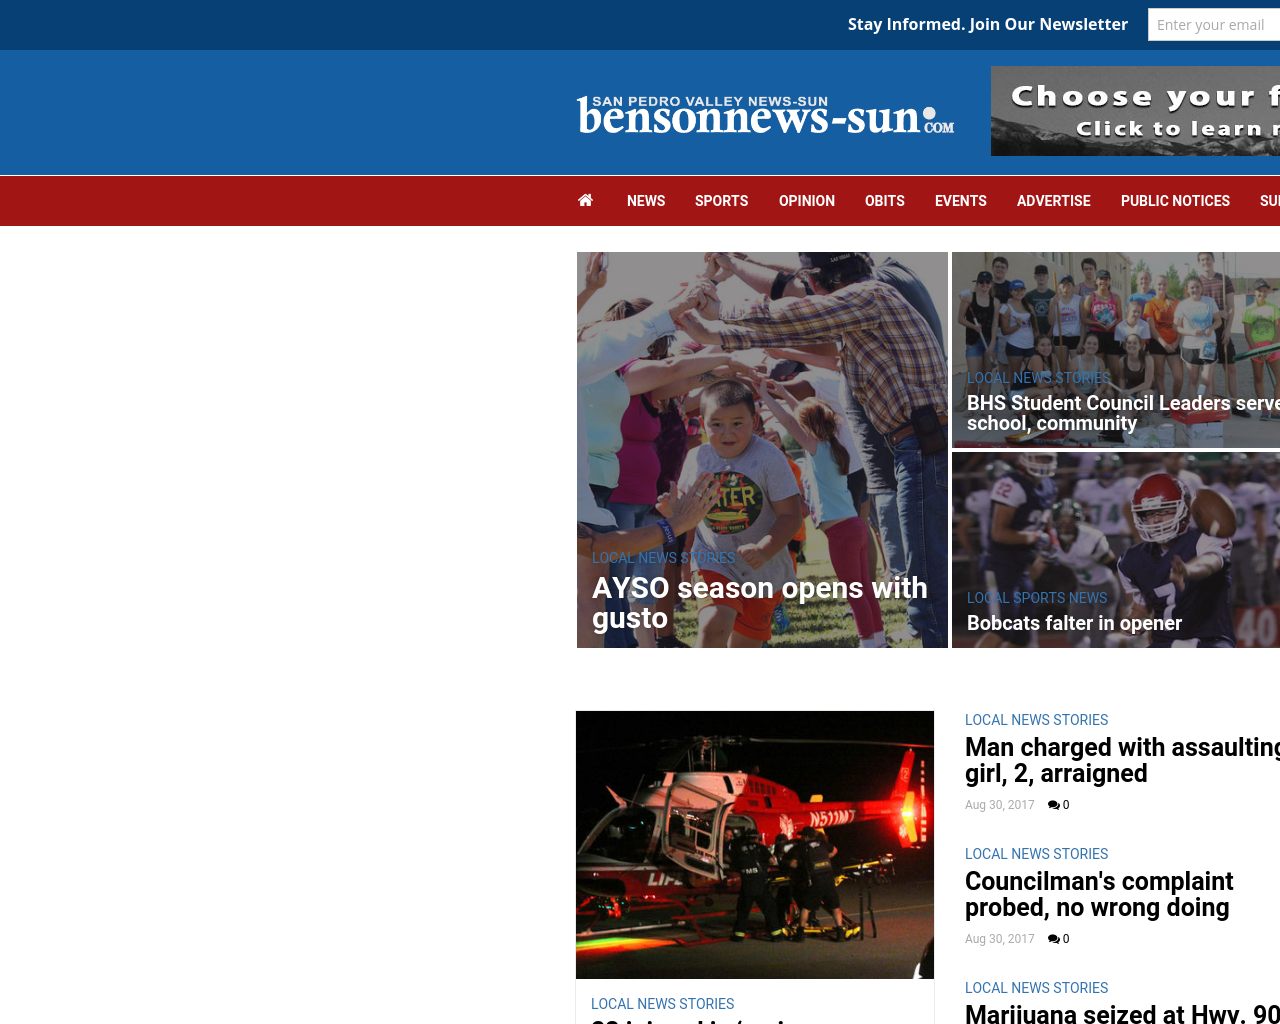 San-Pedro-Valley-News-Sun:-bensonnews-sun.com-Advertising-Reviews-Pricing